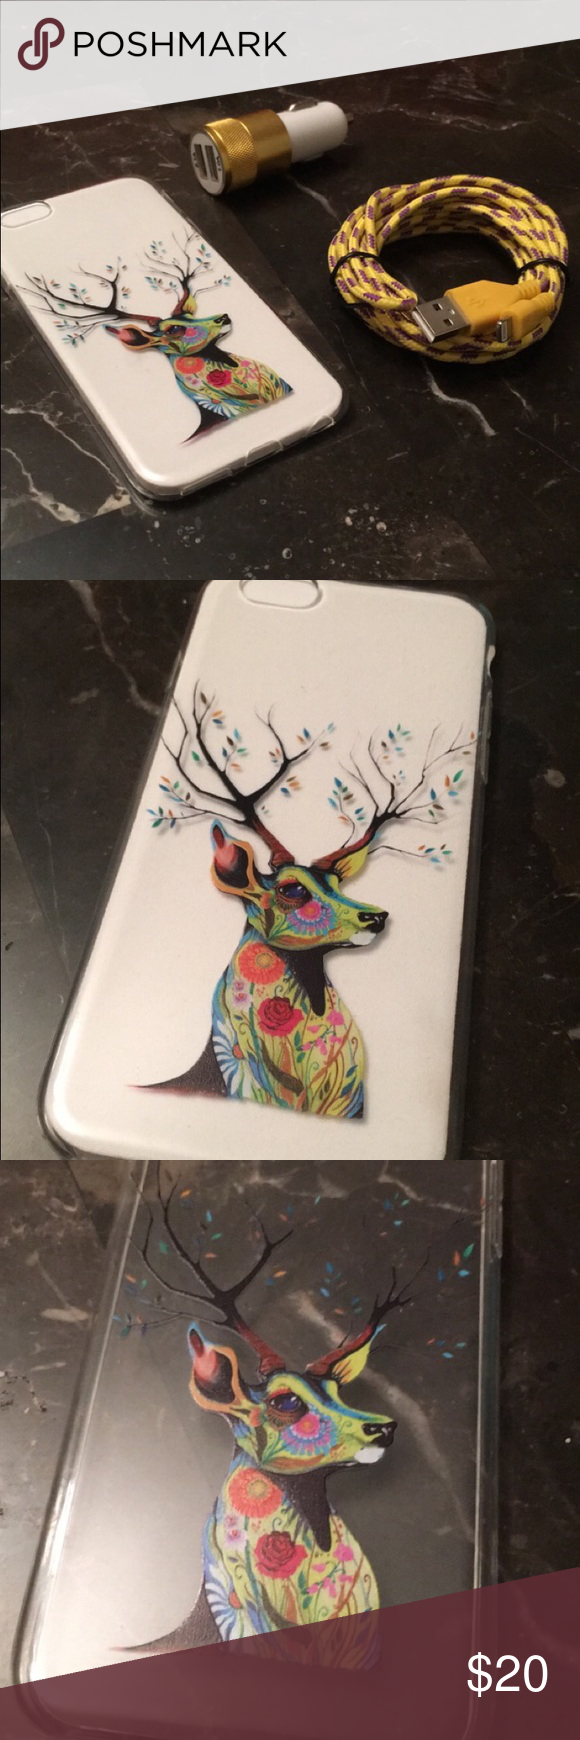 📱iPhone 6s 📱COMBO📱9ft Plug📱Car charger📱Case Here are some iPhone 6 or 6s accessories. The case is clear, bendable and has a multicolored deer on it. The car charger has 2 ports on it. It is White and Gold. The cable is super long at 9ft! It is purple and yellow. All items are brand new. All items are aftermarket, none are Apple Products. NoBrand Accessories Phone Cases